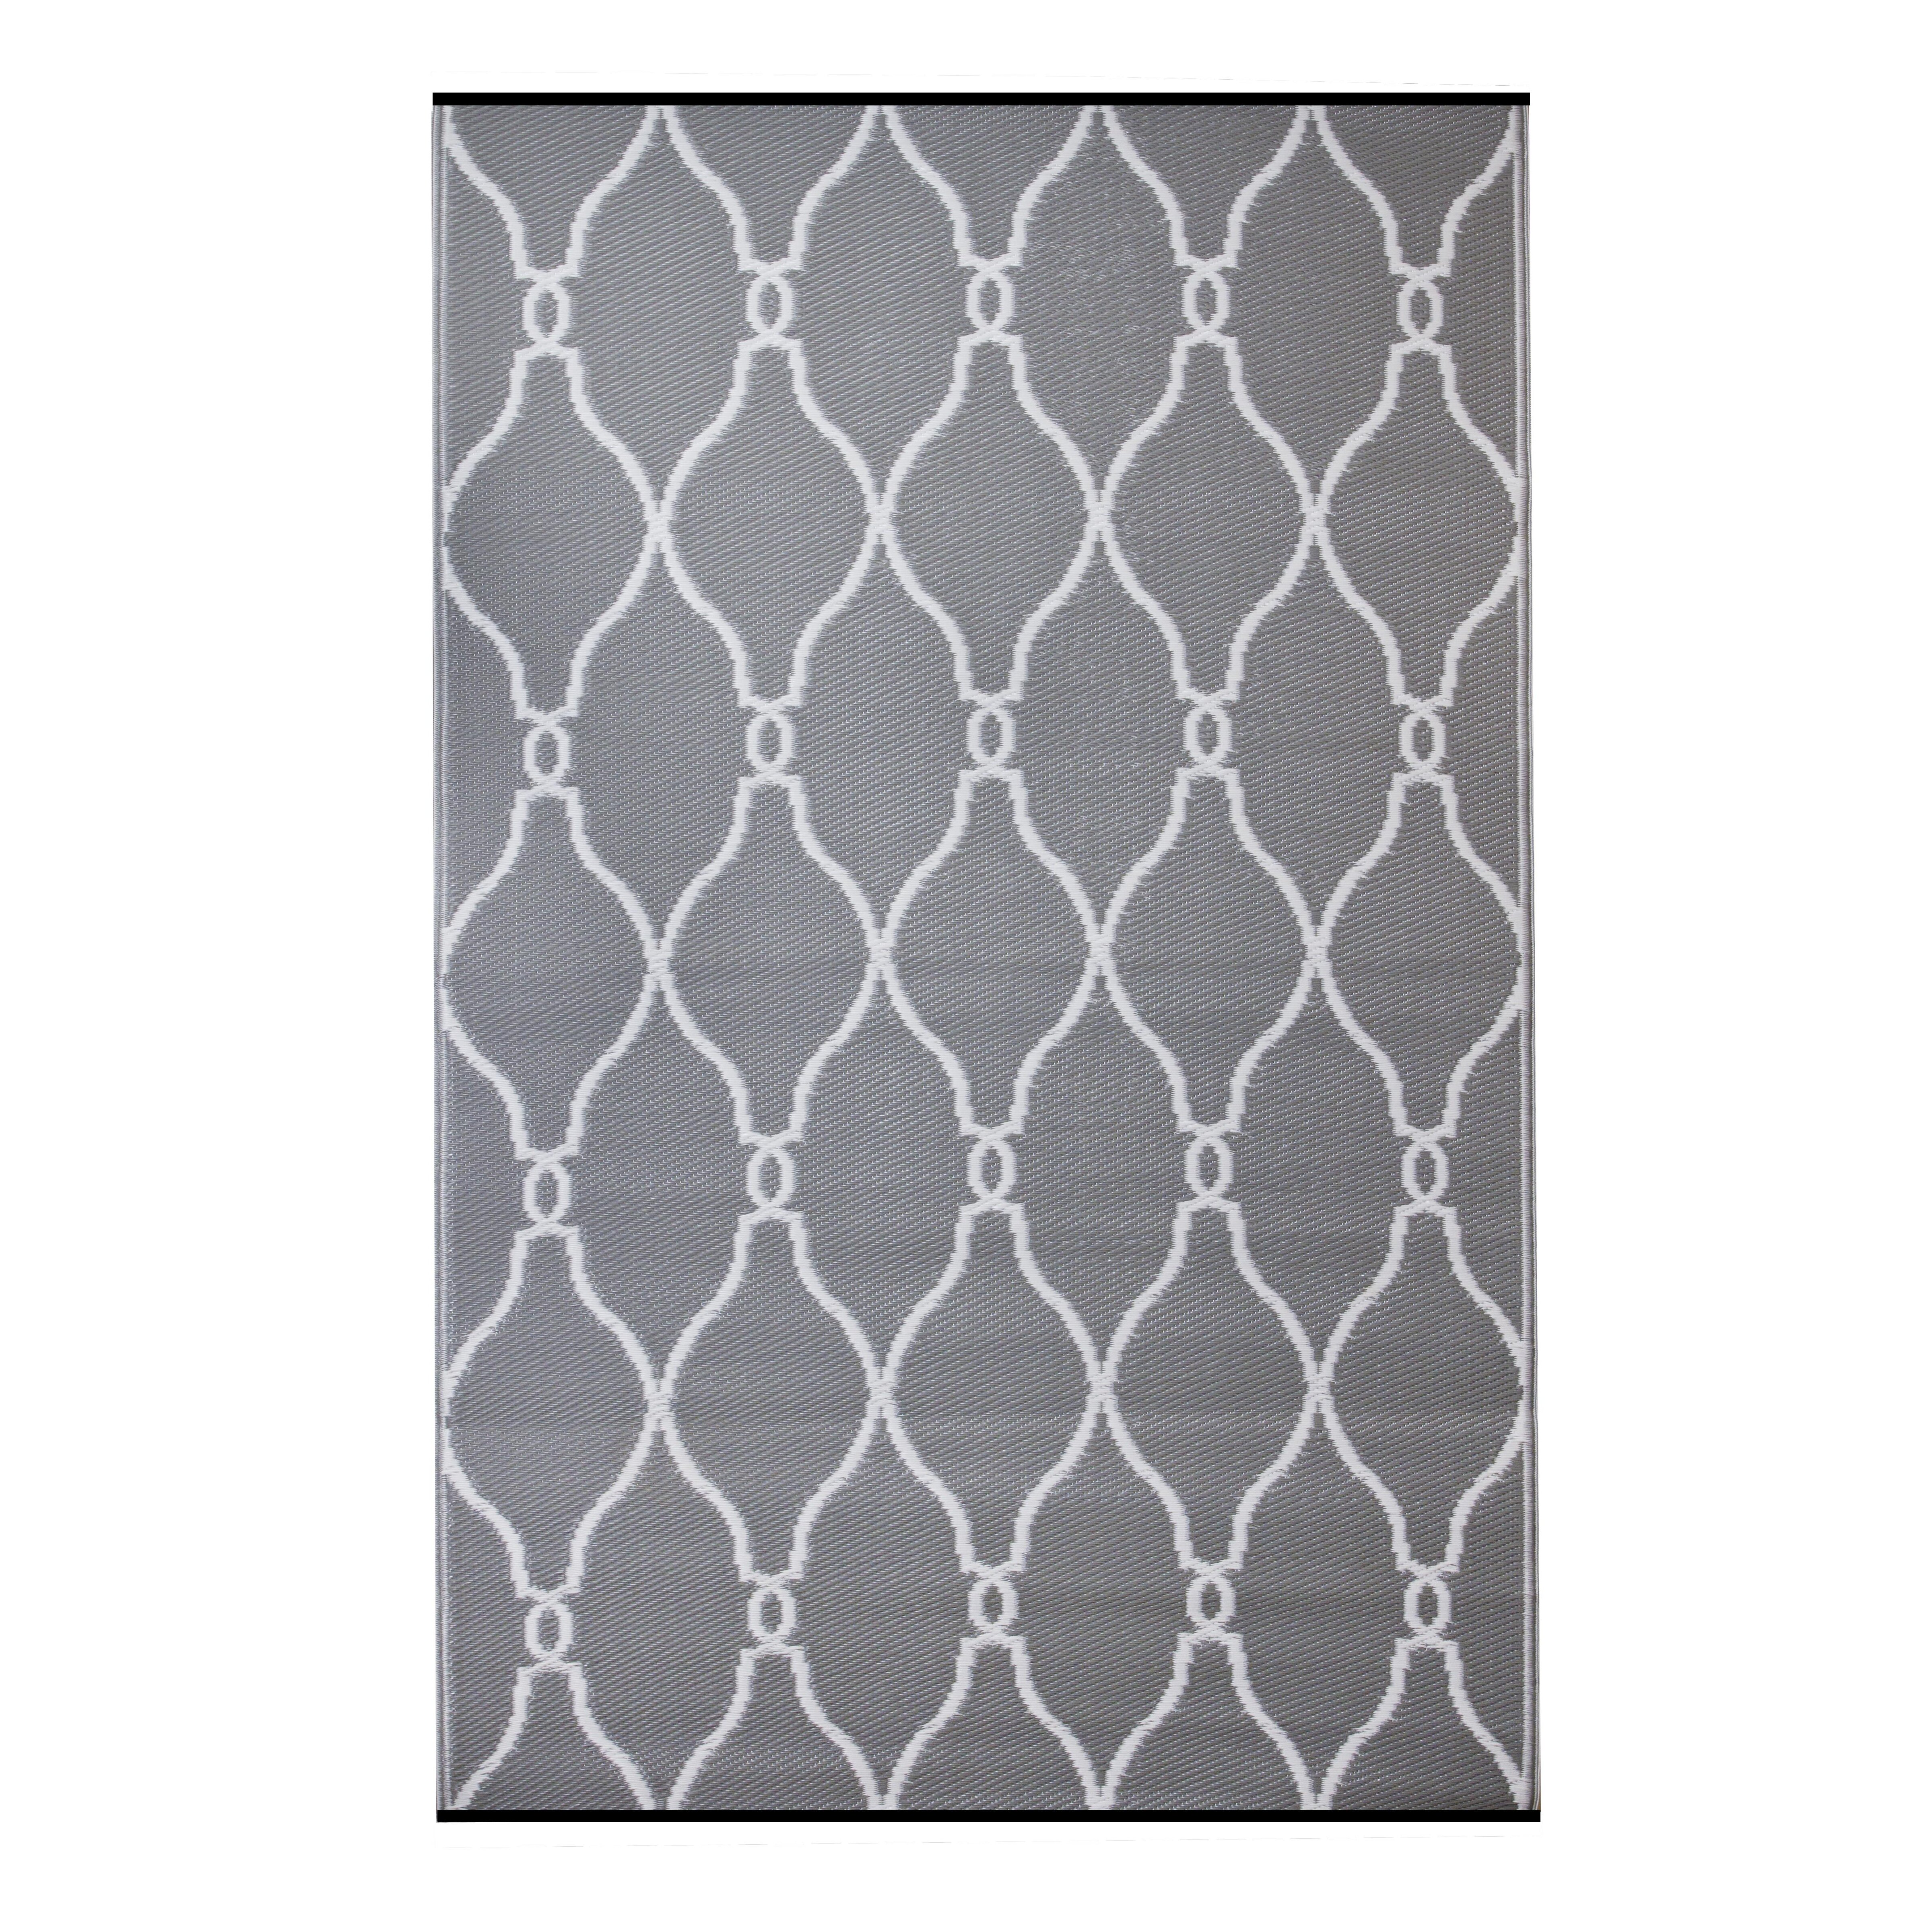 Fox Hill Trading Premier Home Hand Woven Gray White Indoor